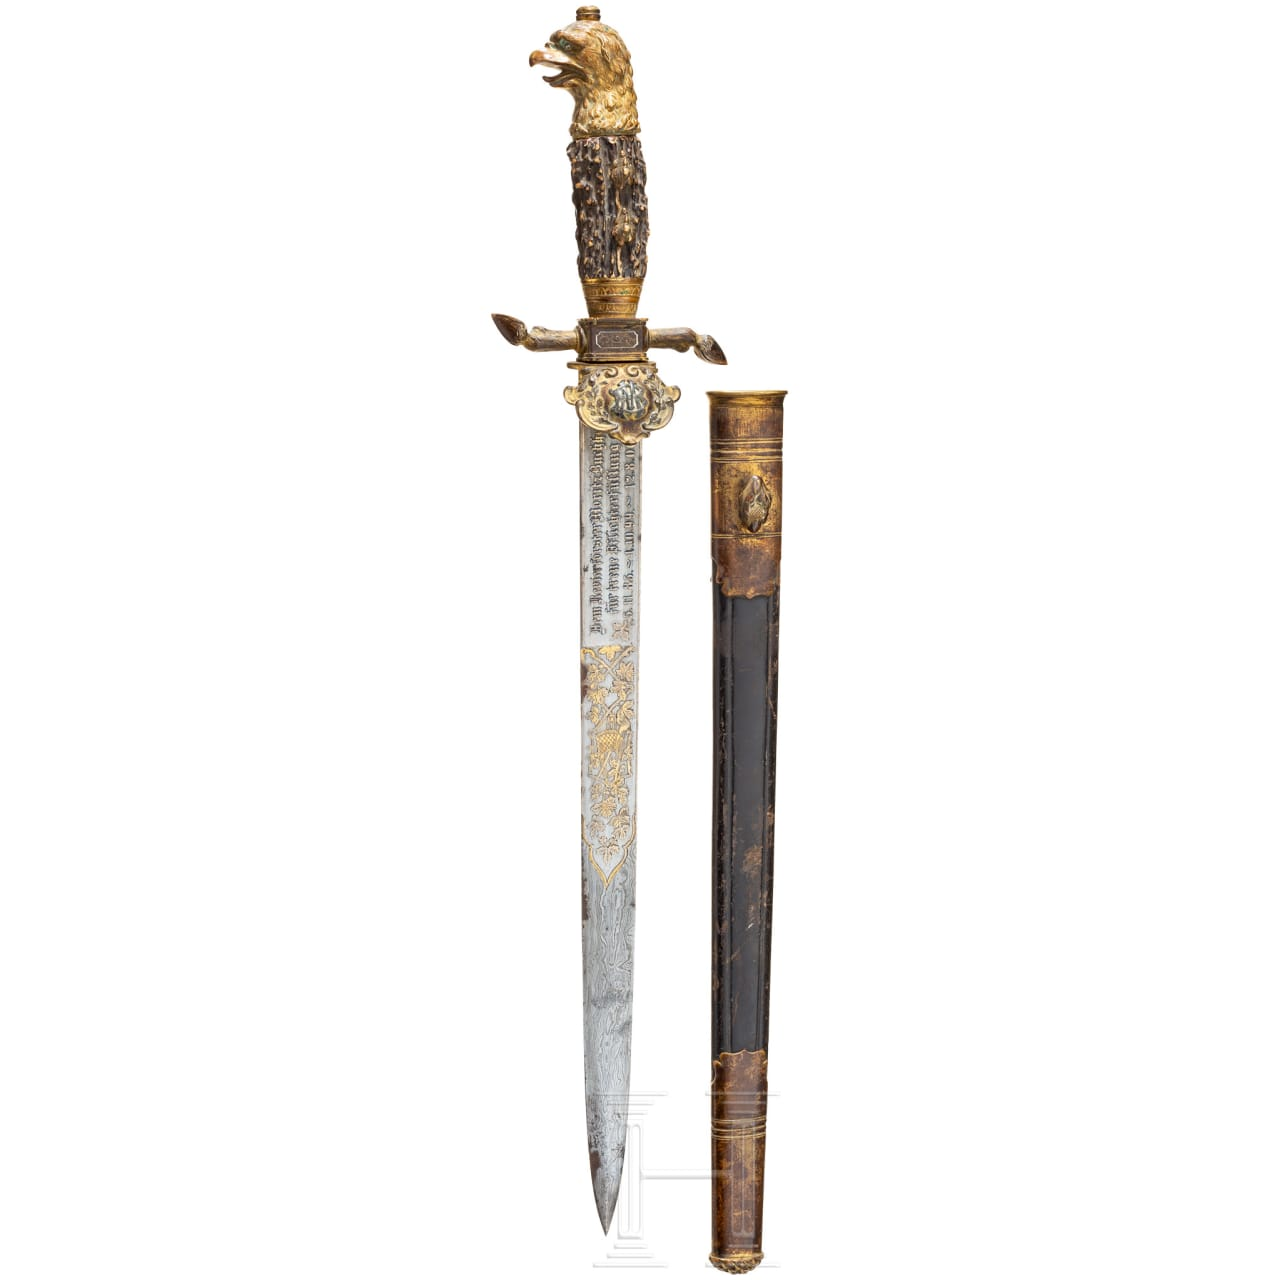 Magnificent presentation hunting hanger with damascus steel blade, around 1900